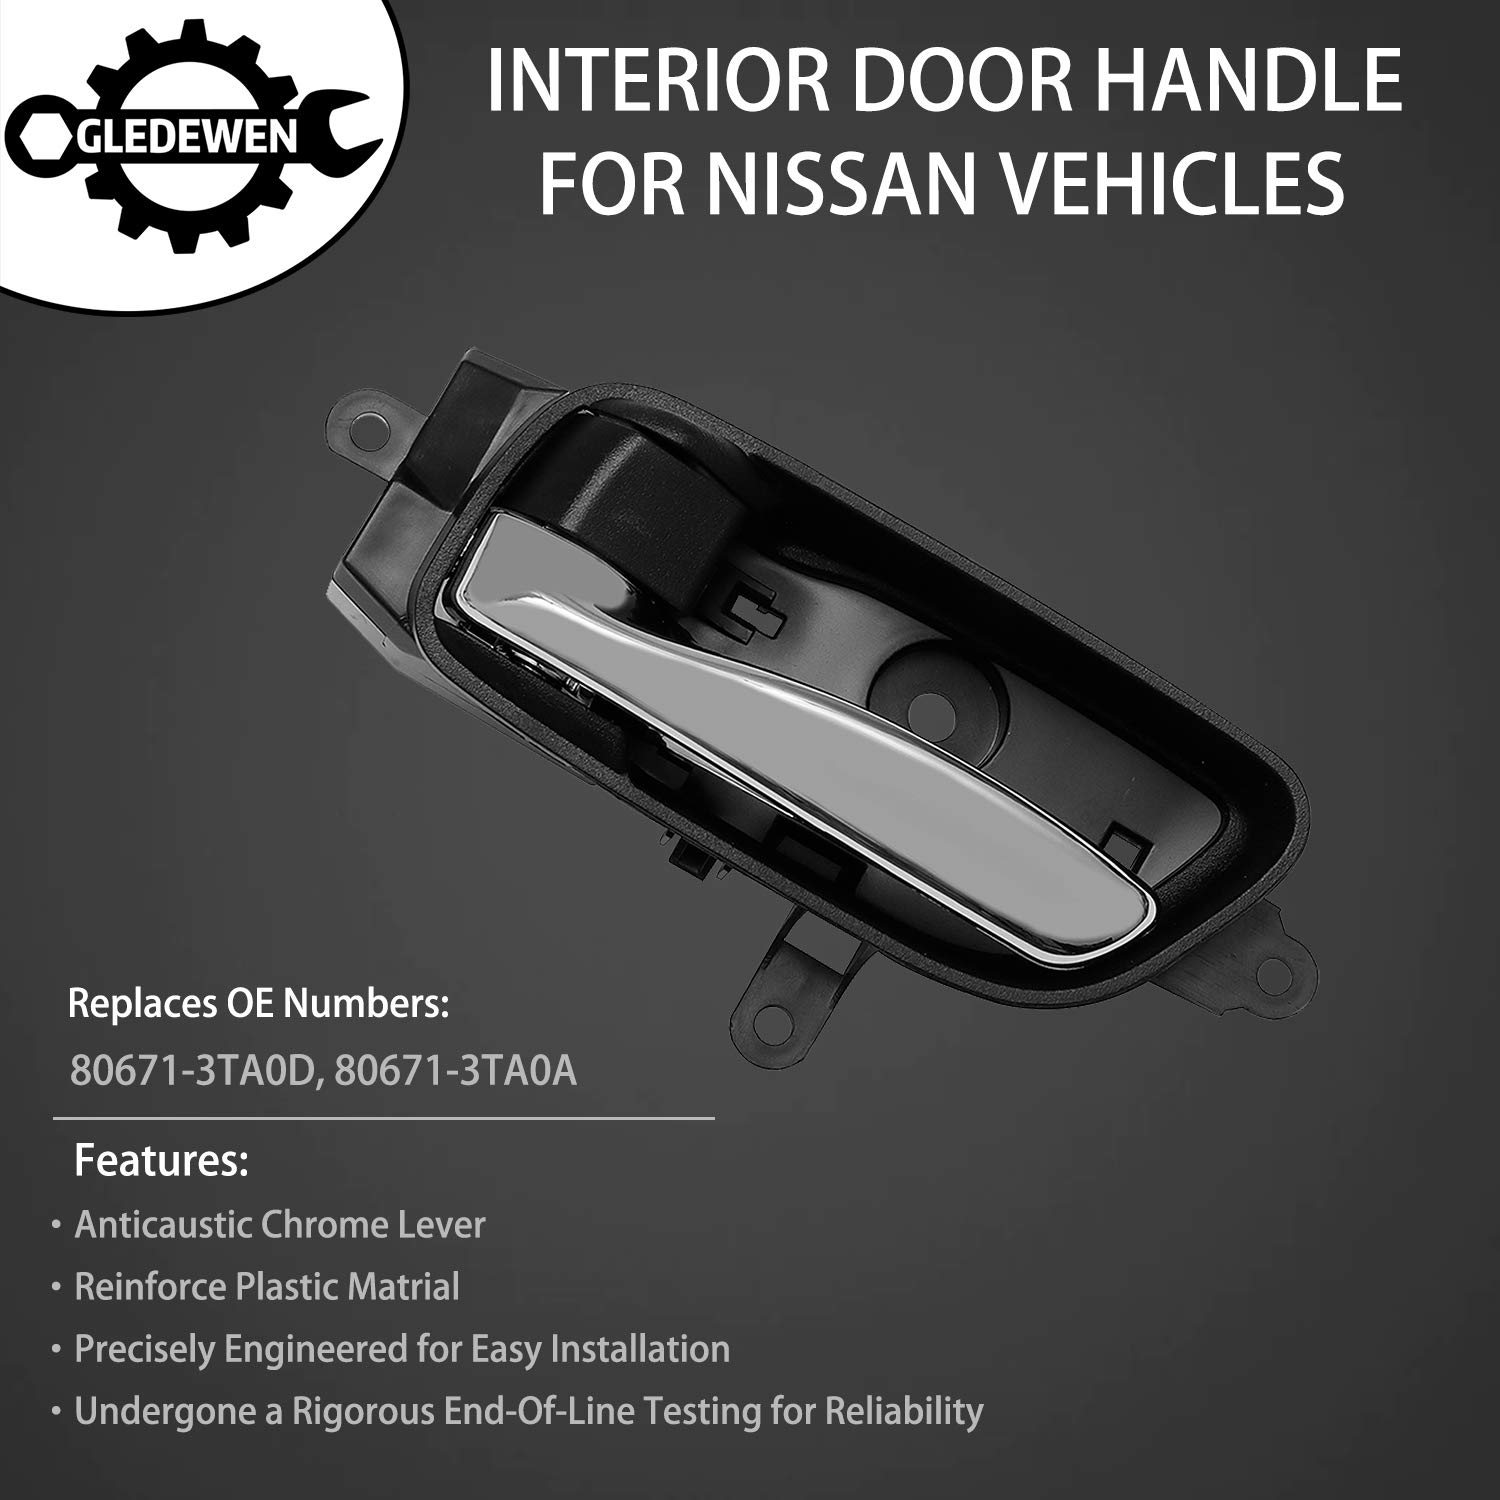 2015 2017 Nissan Titan 2015-2017 Nissan Murano Replaces# 80670-3TA0D 2016-2017 Titan XD Interior Door Handle Front Rear Right Passenger Side for 2013-2017 Nissan Altima Pathfinder